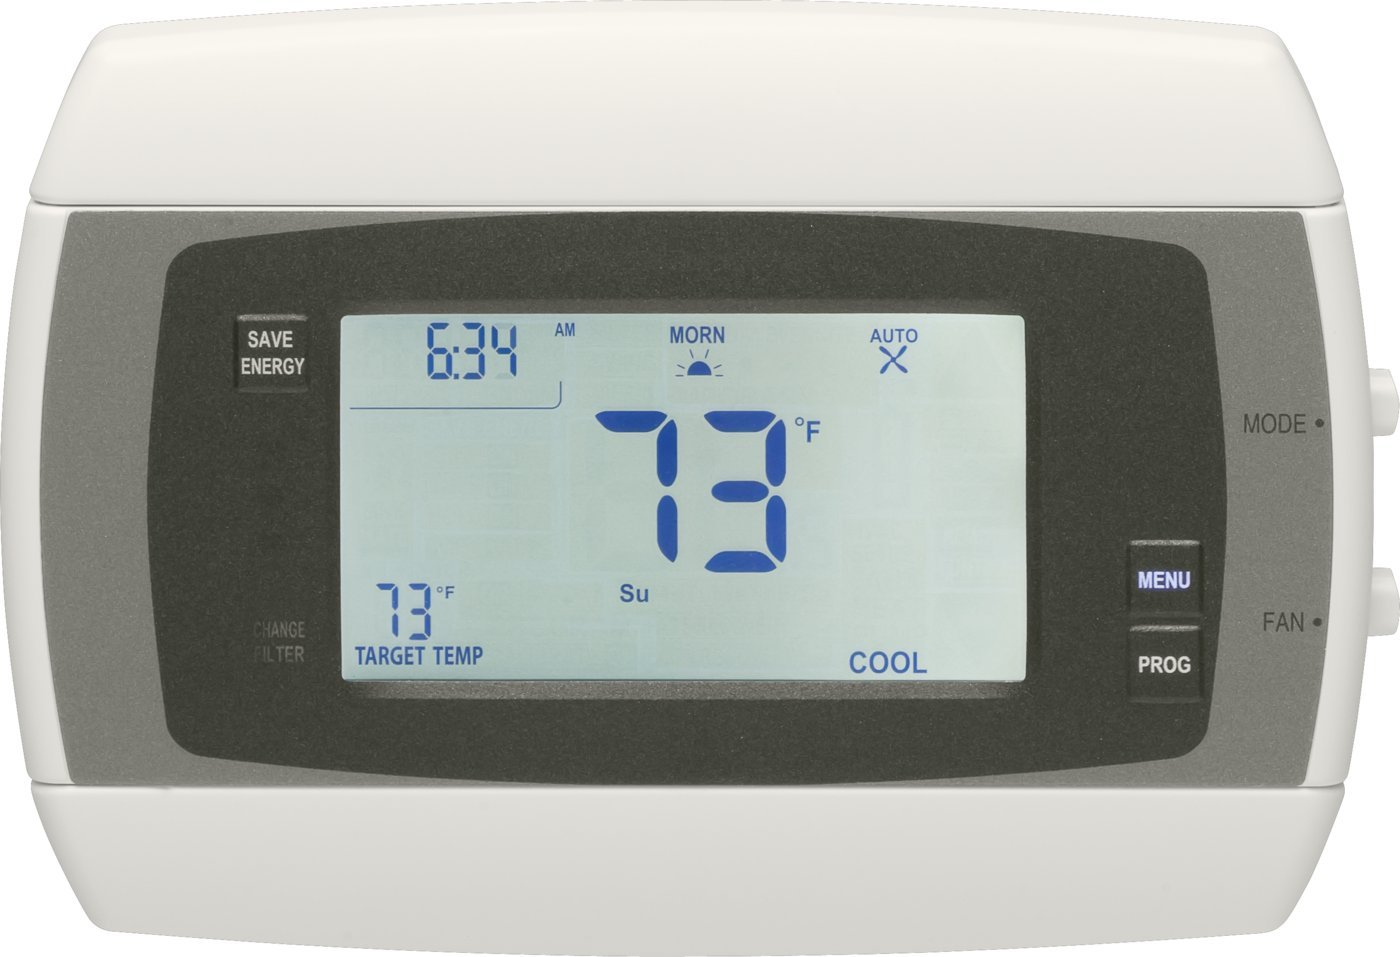 Wiring Diagram For Vivint Thermostat : Trane company wiring diagrams schneider electric